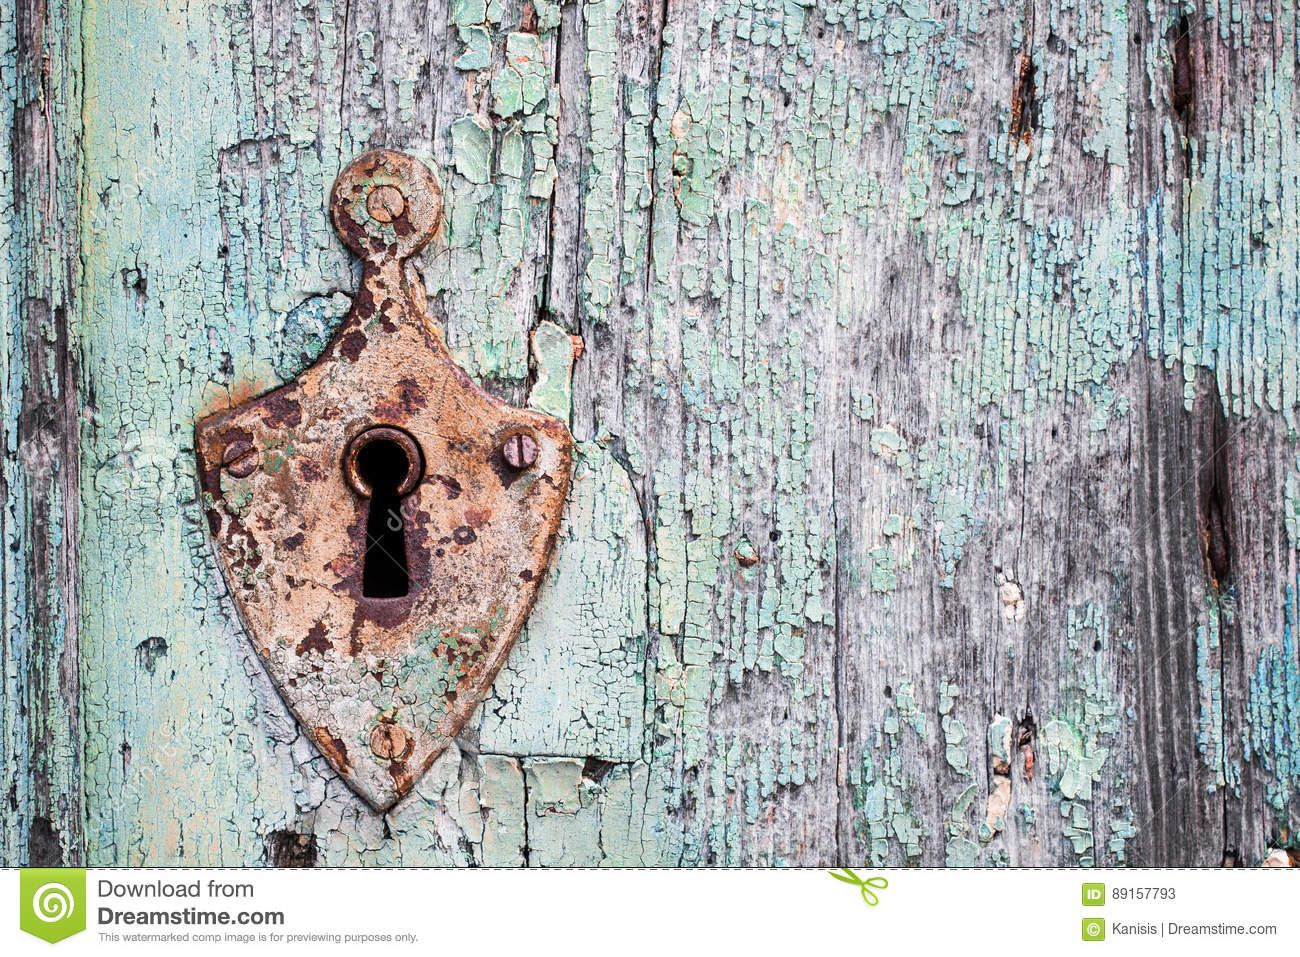 Old rusty metal lock and keyhole on a old turquoise wooden door